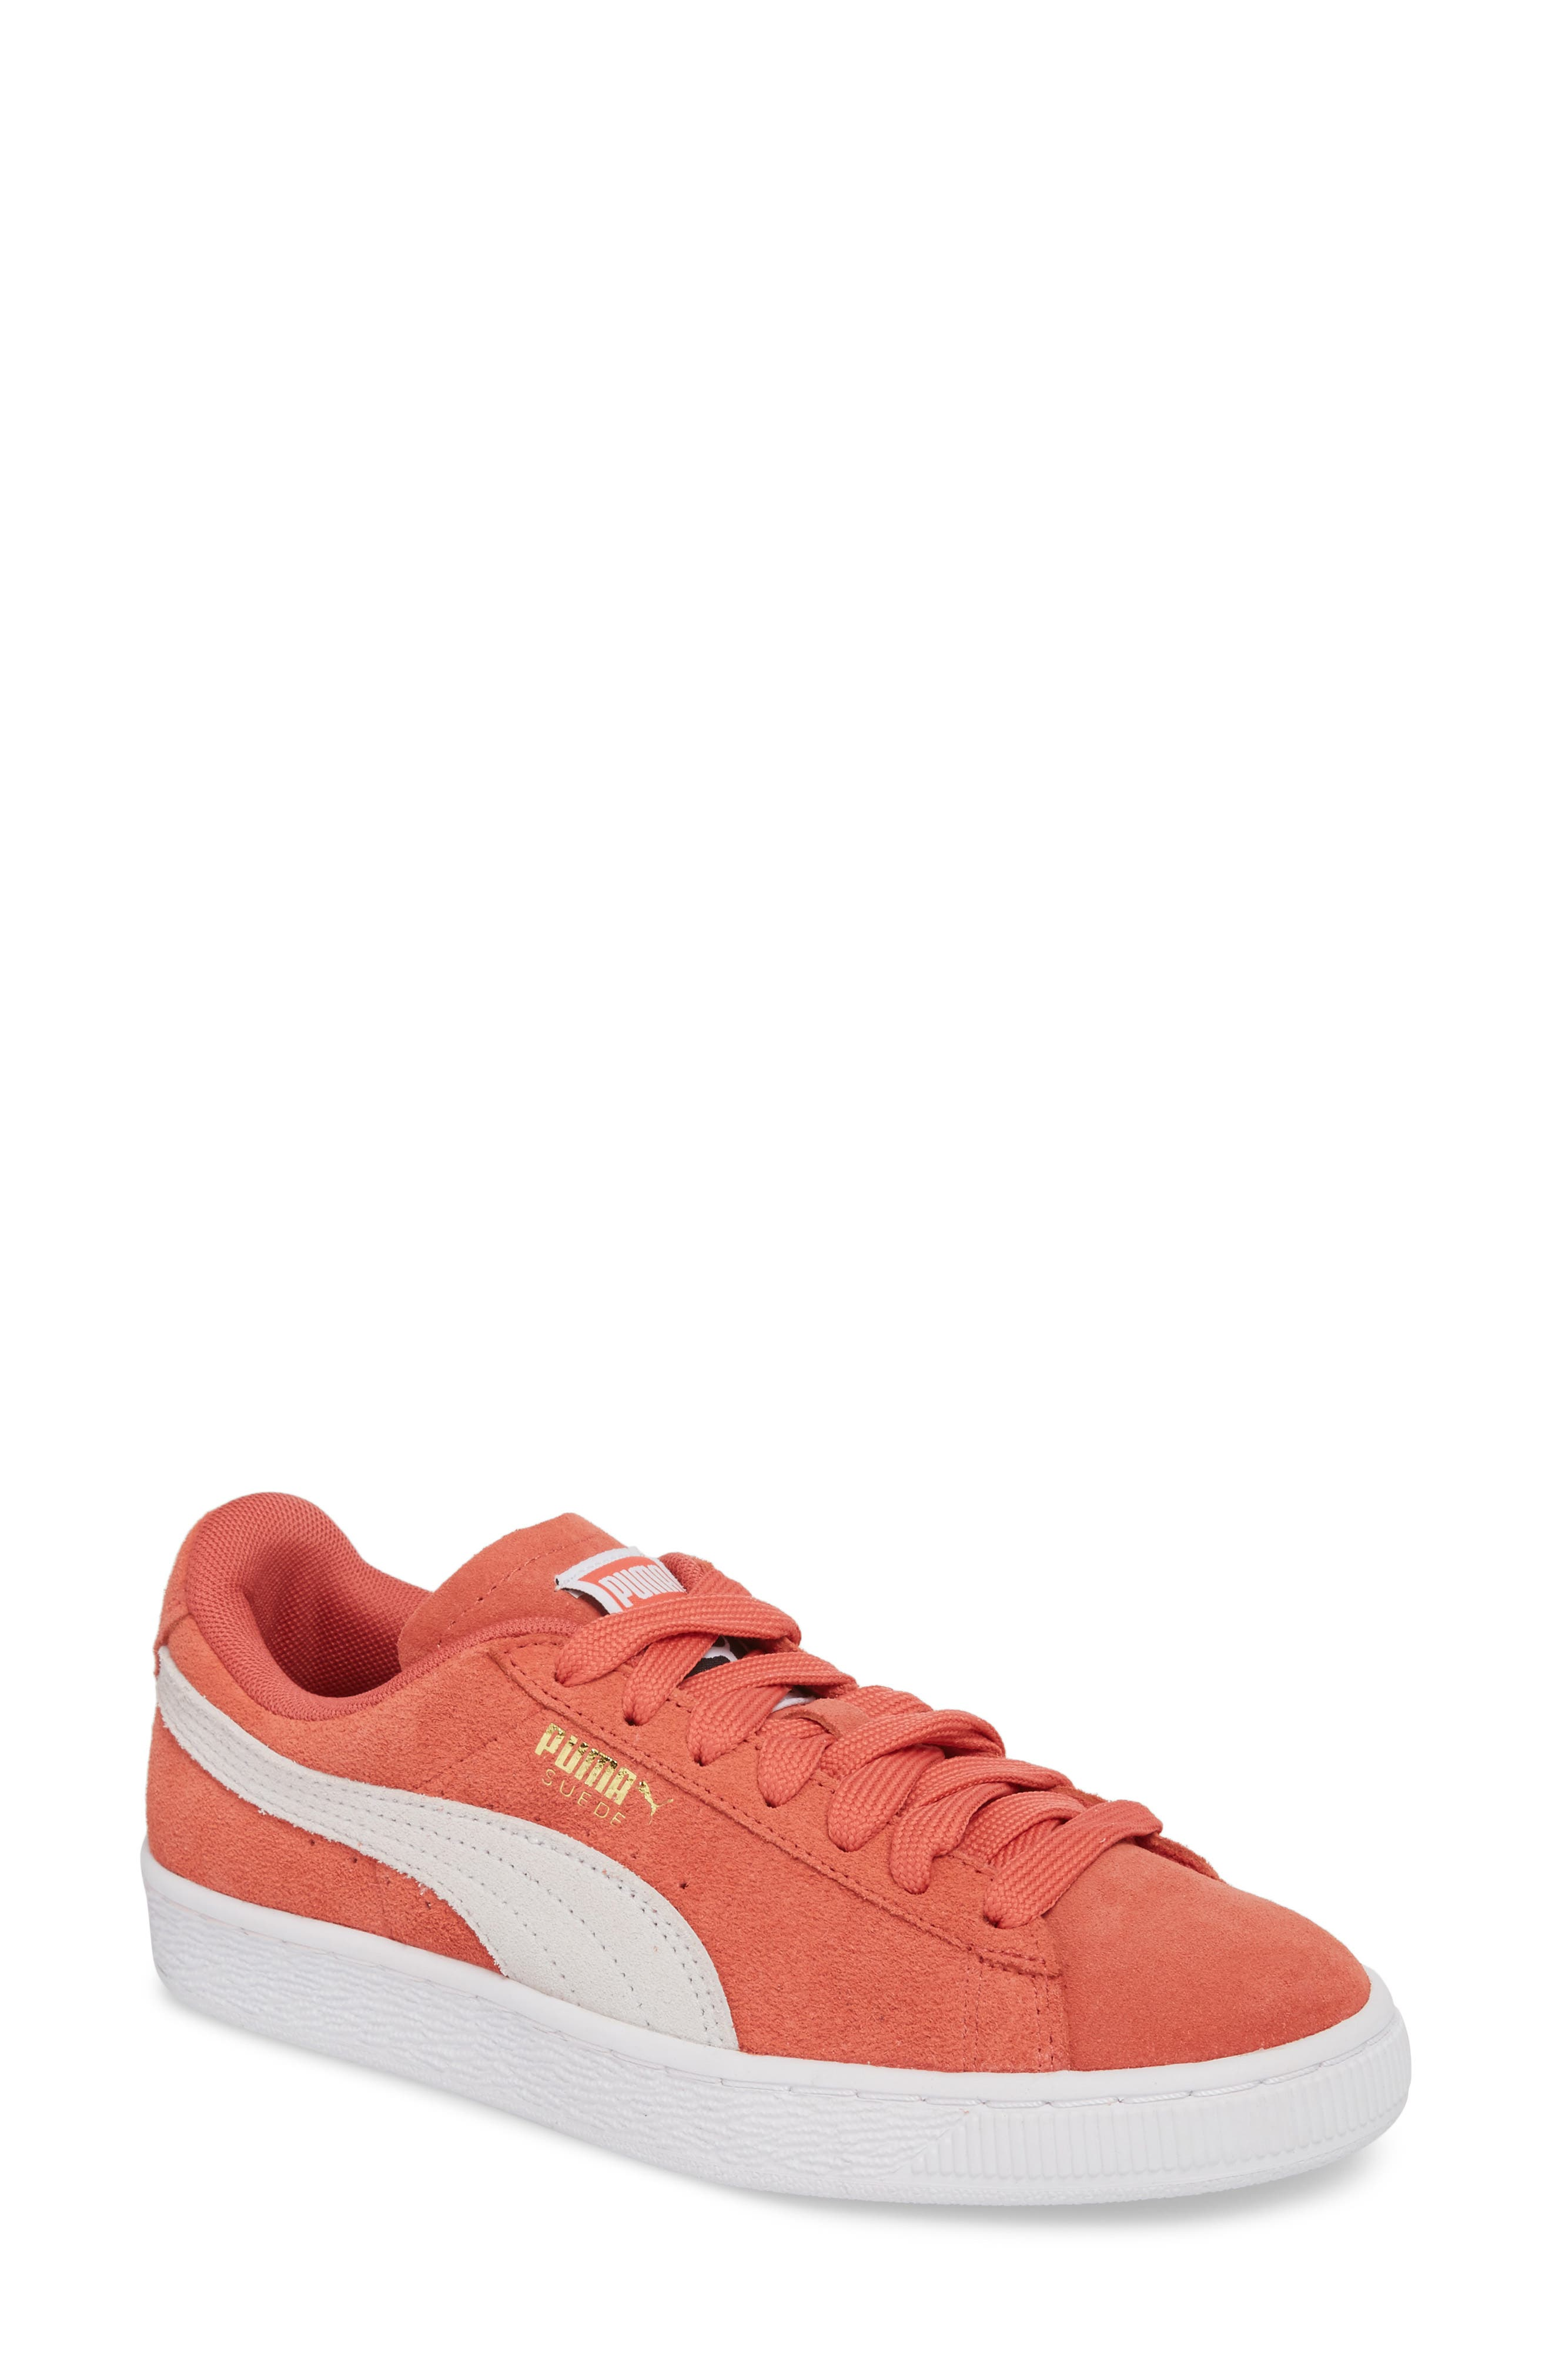 Suede Sneaker,                             Main thumbnail 1, color,                             Spiced Coral/ Puma White